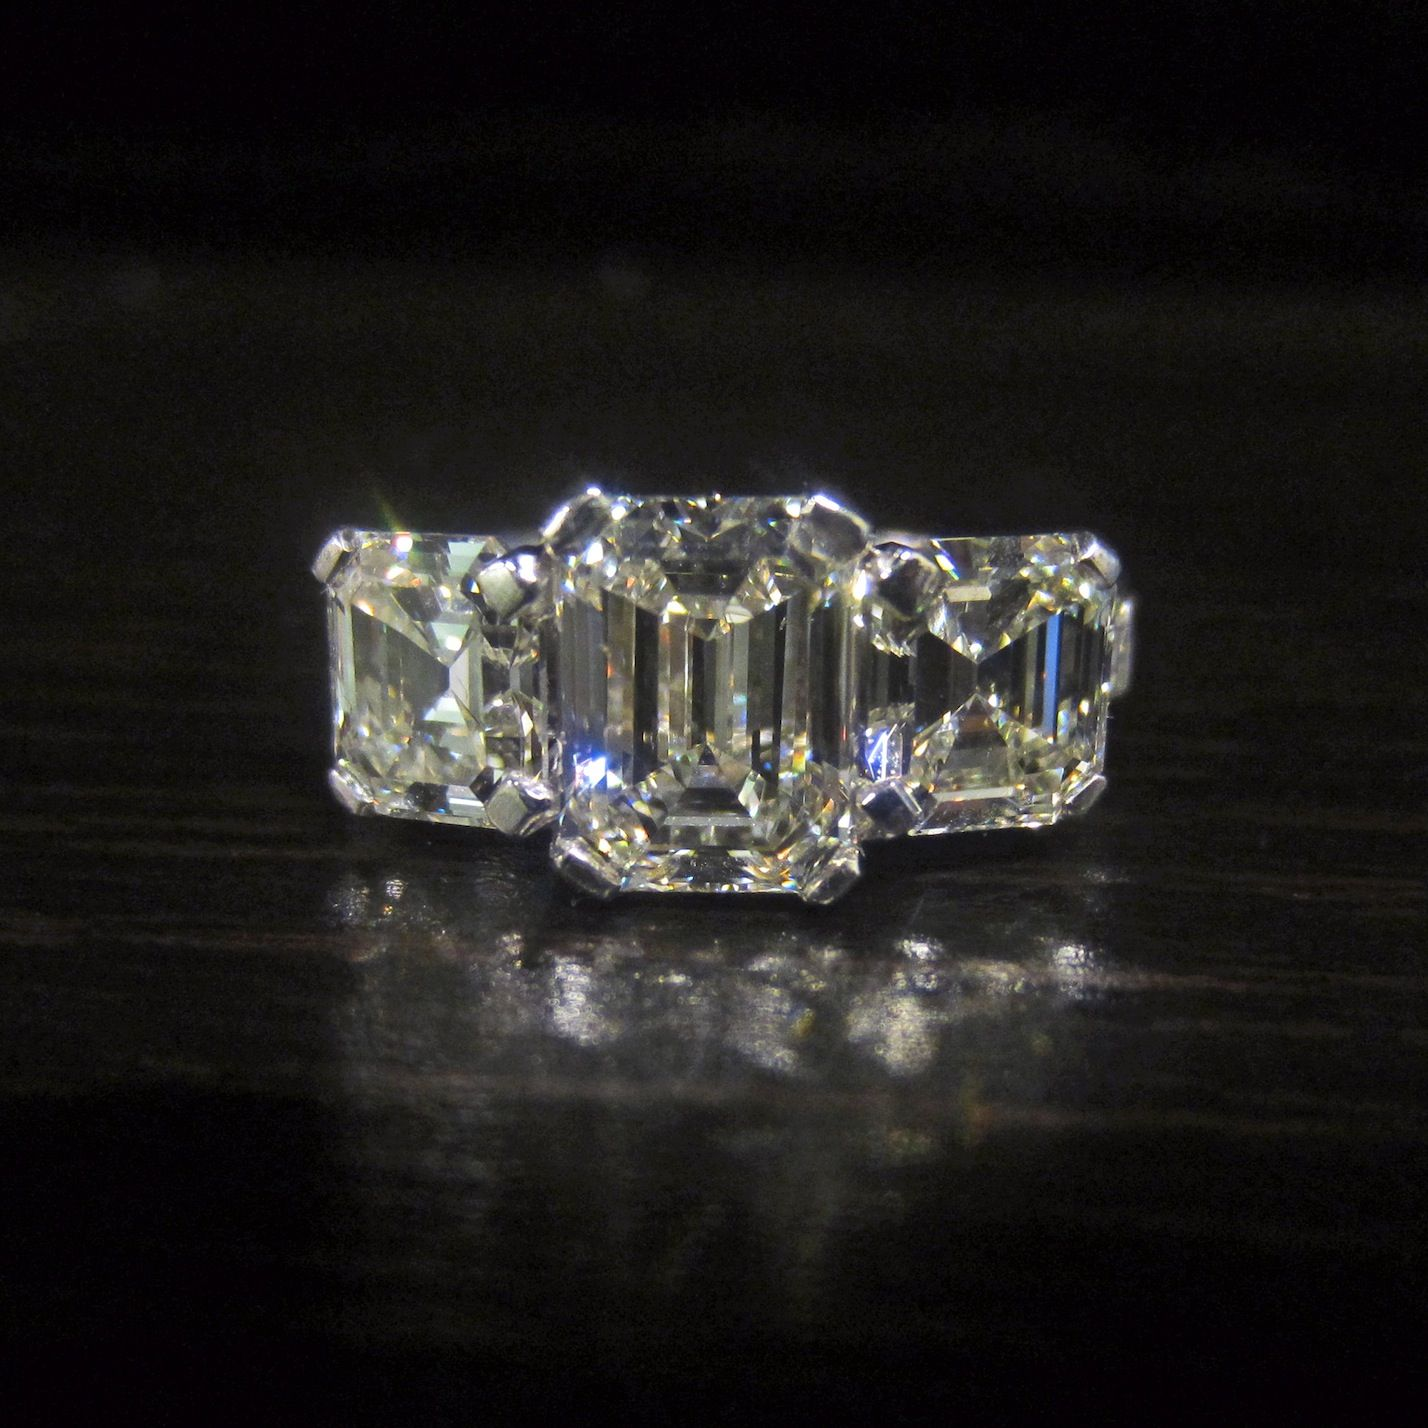 For the gal who wants serious sparkle, a contemporary three stone engagement ring in platinum, an emerald cut diamond flanked by Asschers. From Doyle & Doyle.